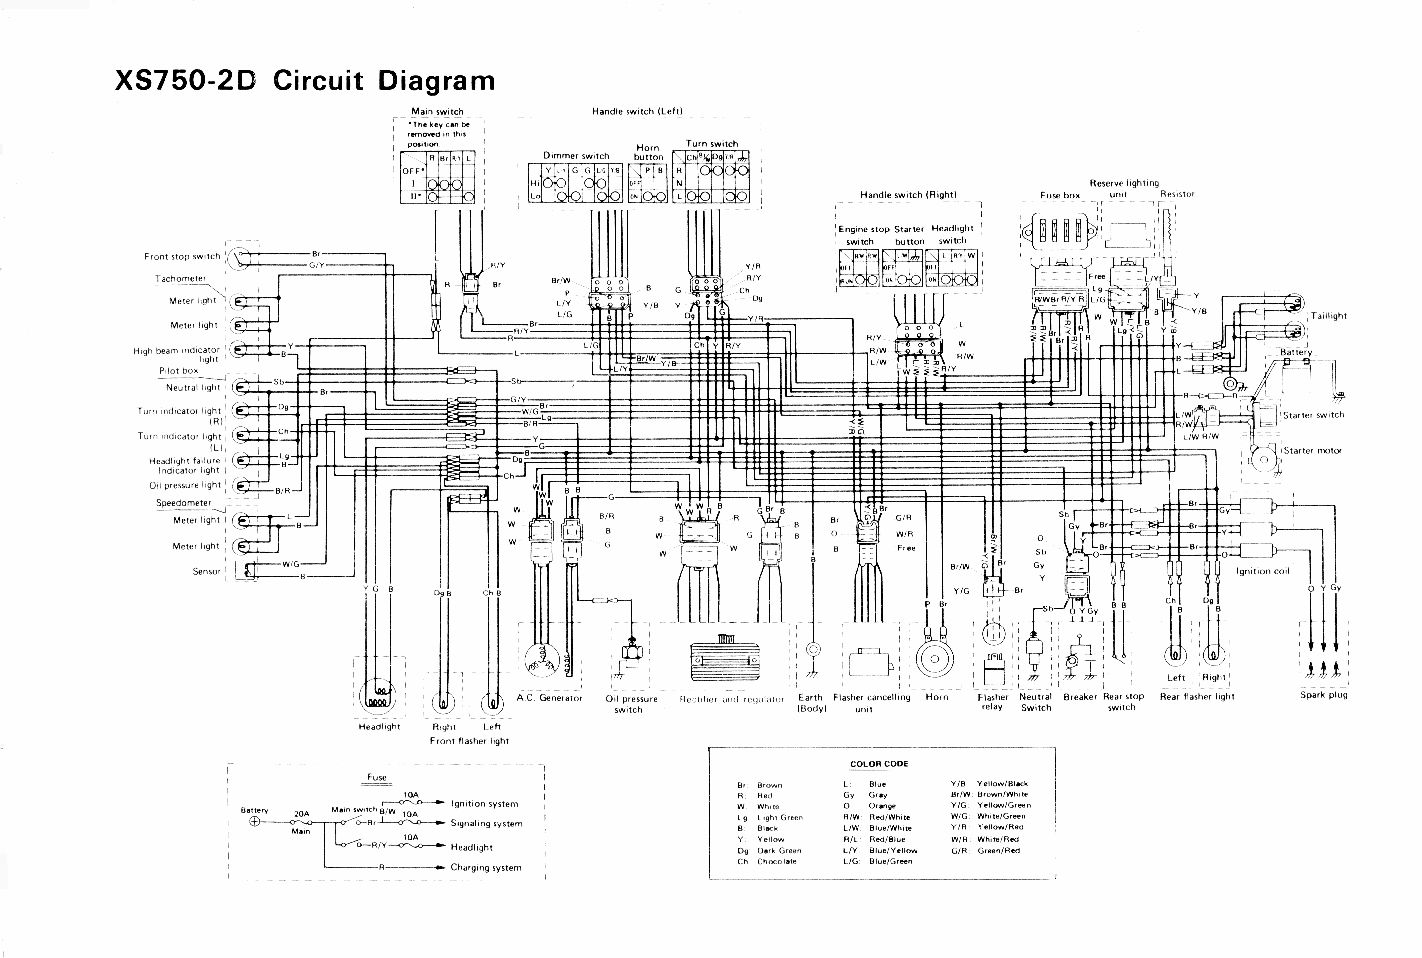 Xs750 Wiring Diagram Diagrams Block Samsungscx6555 The Yamaha Triples Community Workshop Electrical Rh Org 1977 1978